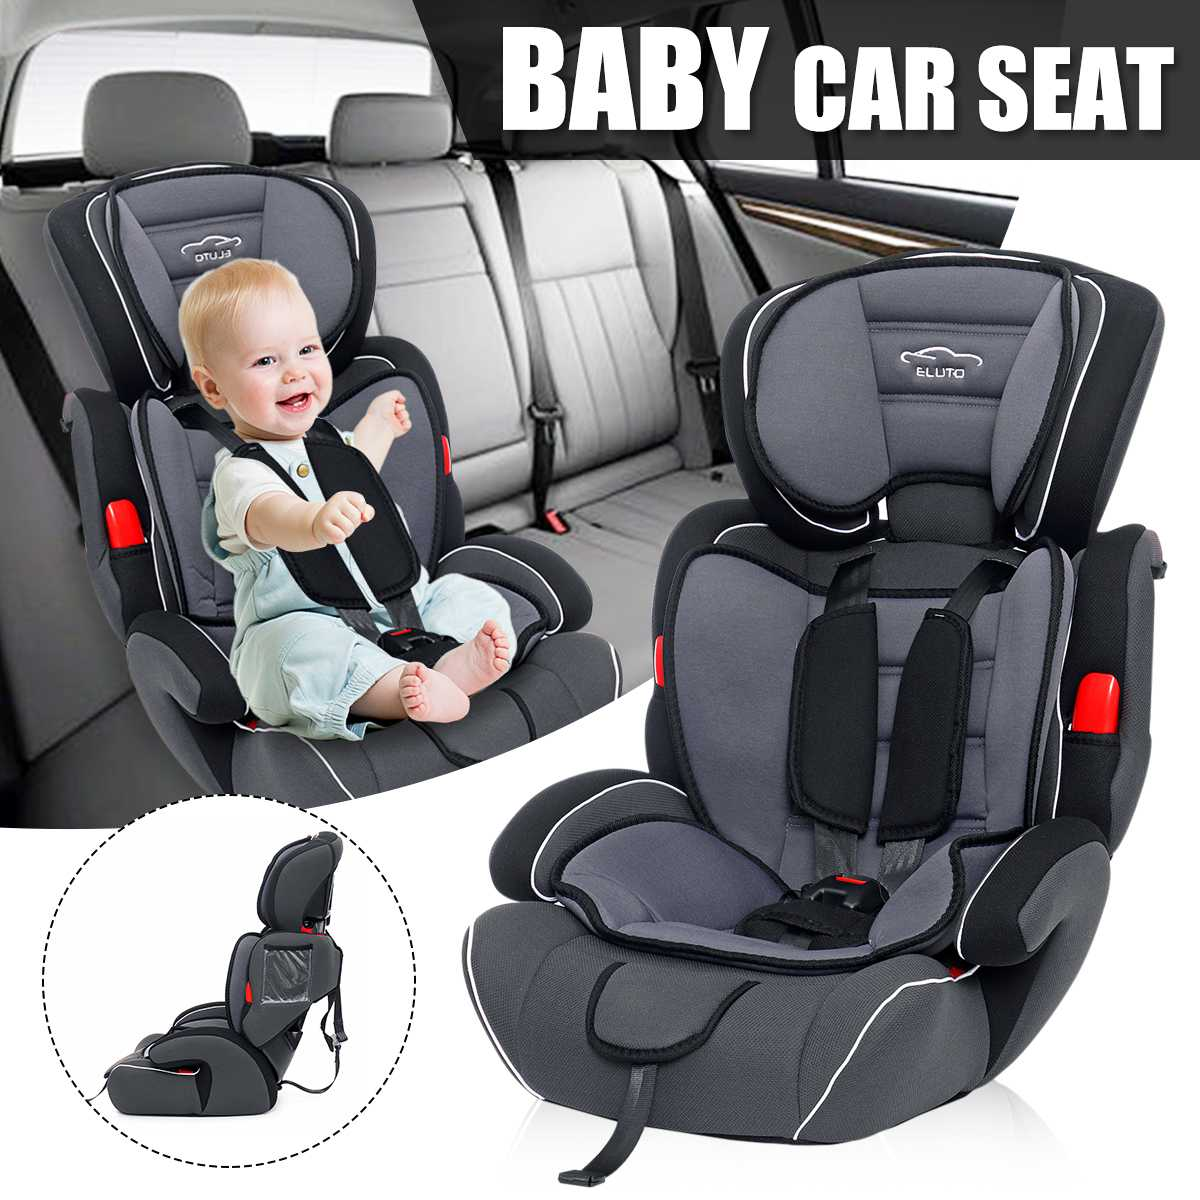 Kids  Car Safety Baby Seat Safety Seats for Armchair 9-36KG Group 1/2/3 Five-Point Harness Baby Booster Seats 9months-12yearsKids  Car Safety Baby Seat Safety Seats for Armchair 9-36KG Group 1/2/3 Five-Point Harness Baby Booster Seats 9months-12years